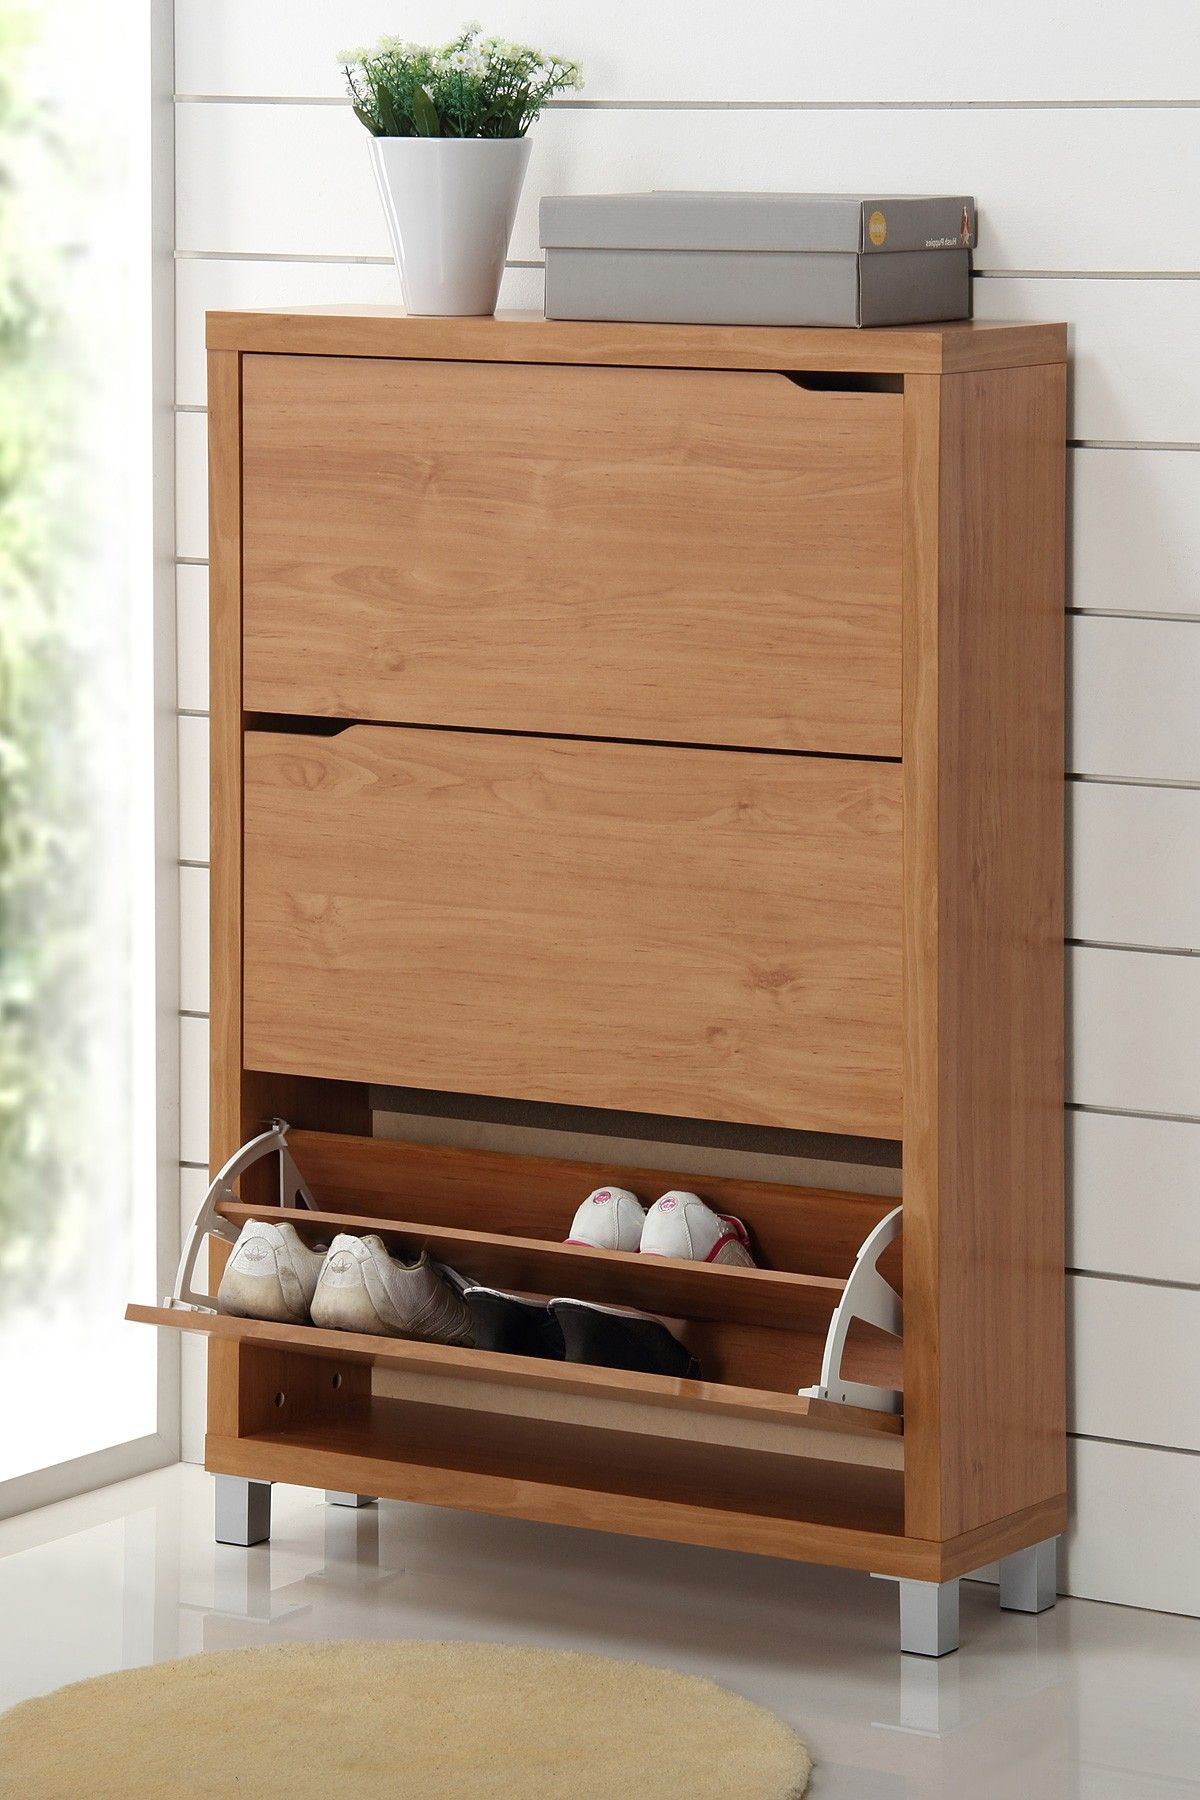 simms maple 3 drawer modern shoe cabinet love this for compact spaces interesting design. Black Bedroom Furniture Sets. Home Design Ideas